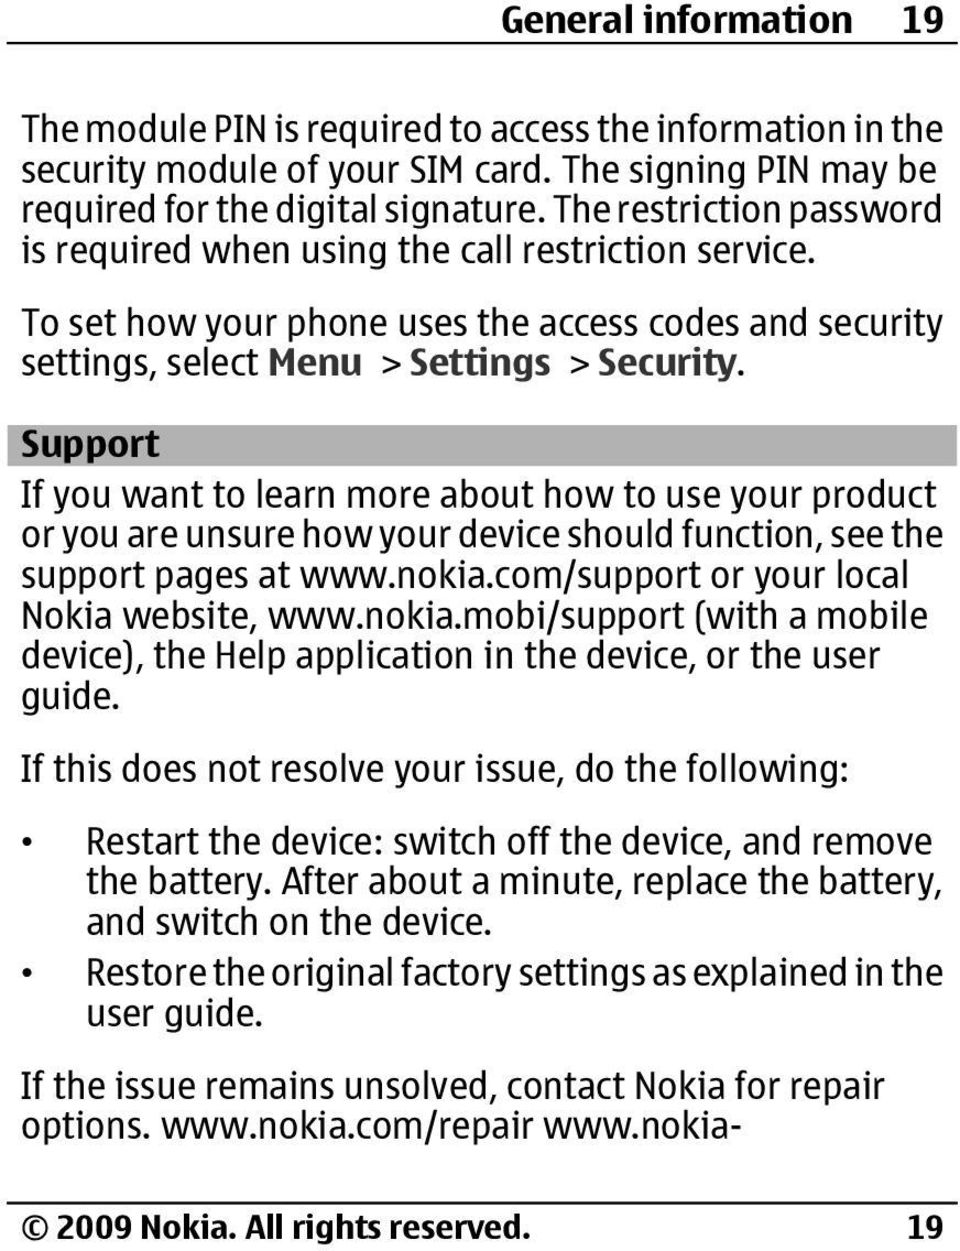 Support If you want to learn more about how to use your product or you are unsure how your device should function, see the support pages at www.nokia.com/support or your local Nokia website, www.